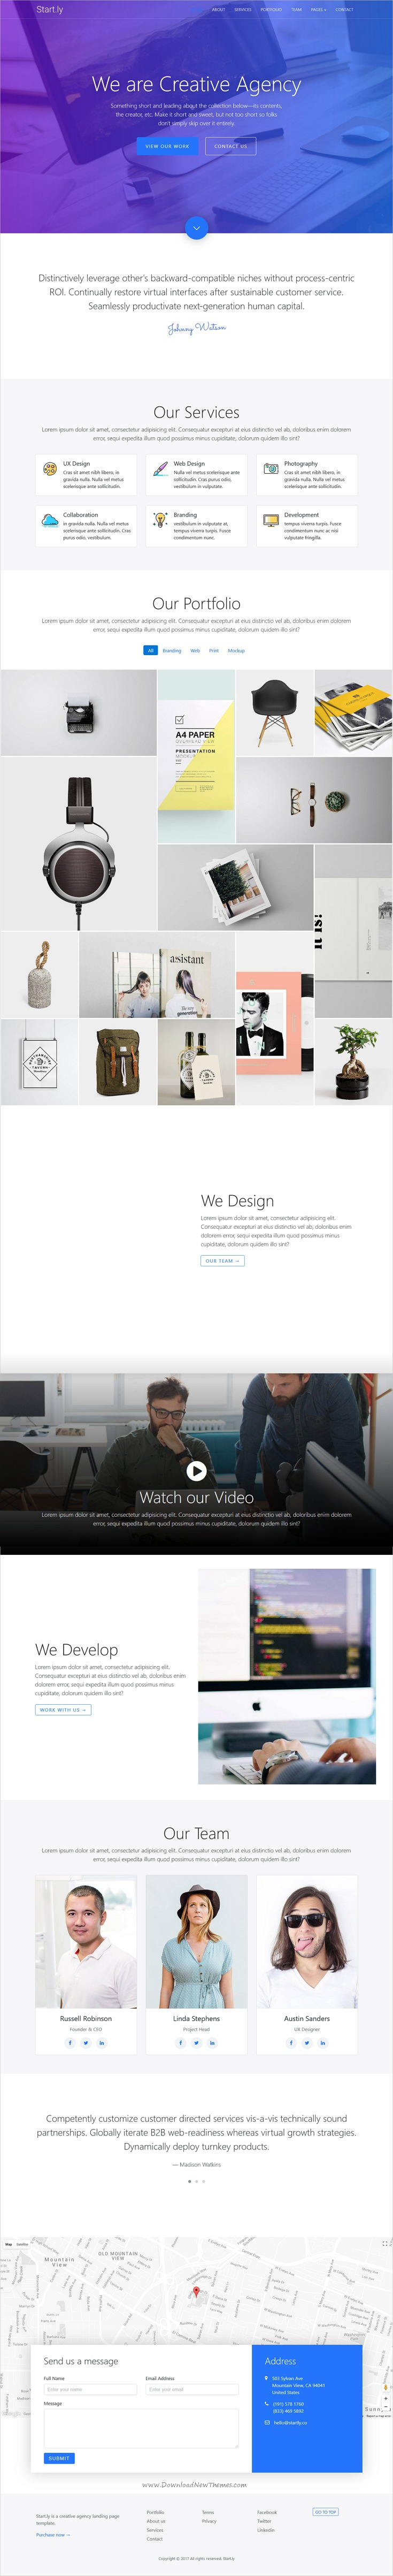 Parallax Website Template Startly — Agency One Page Parallax Website Template  Startups